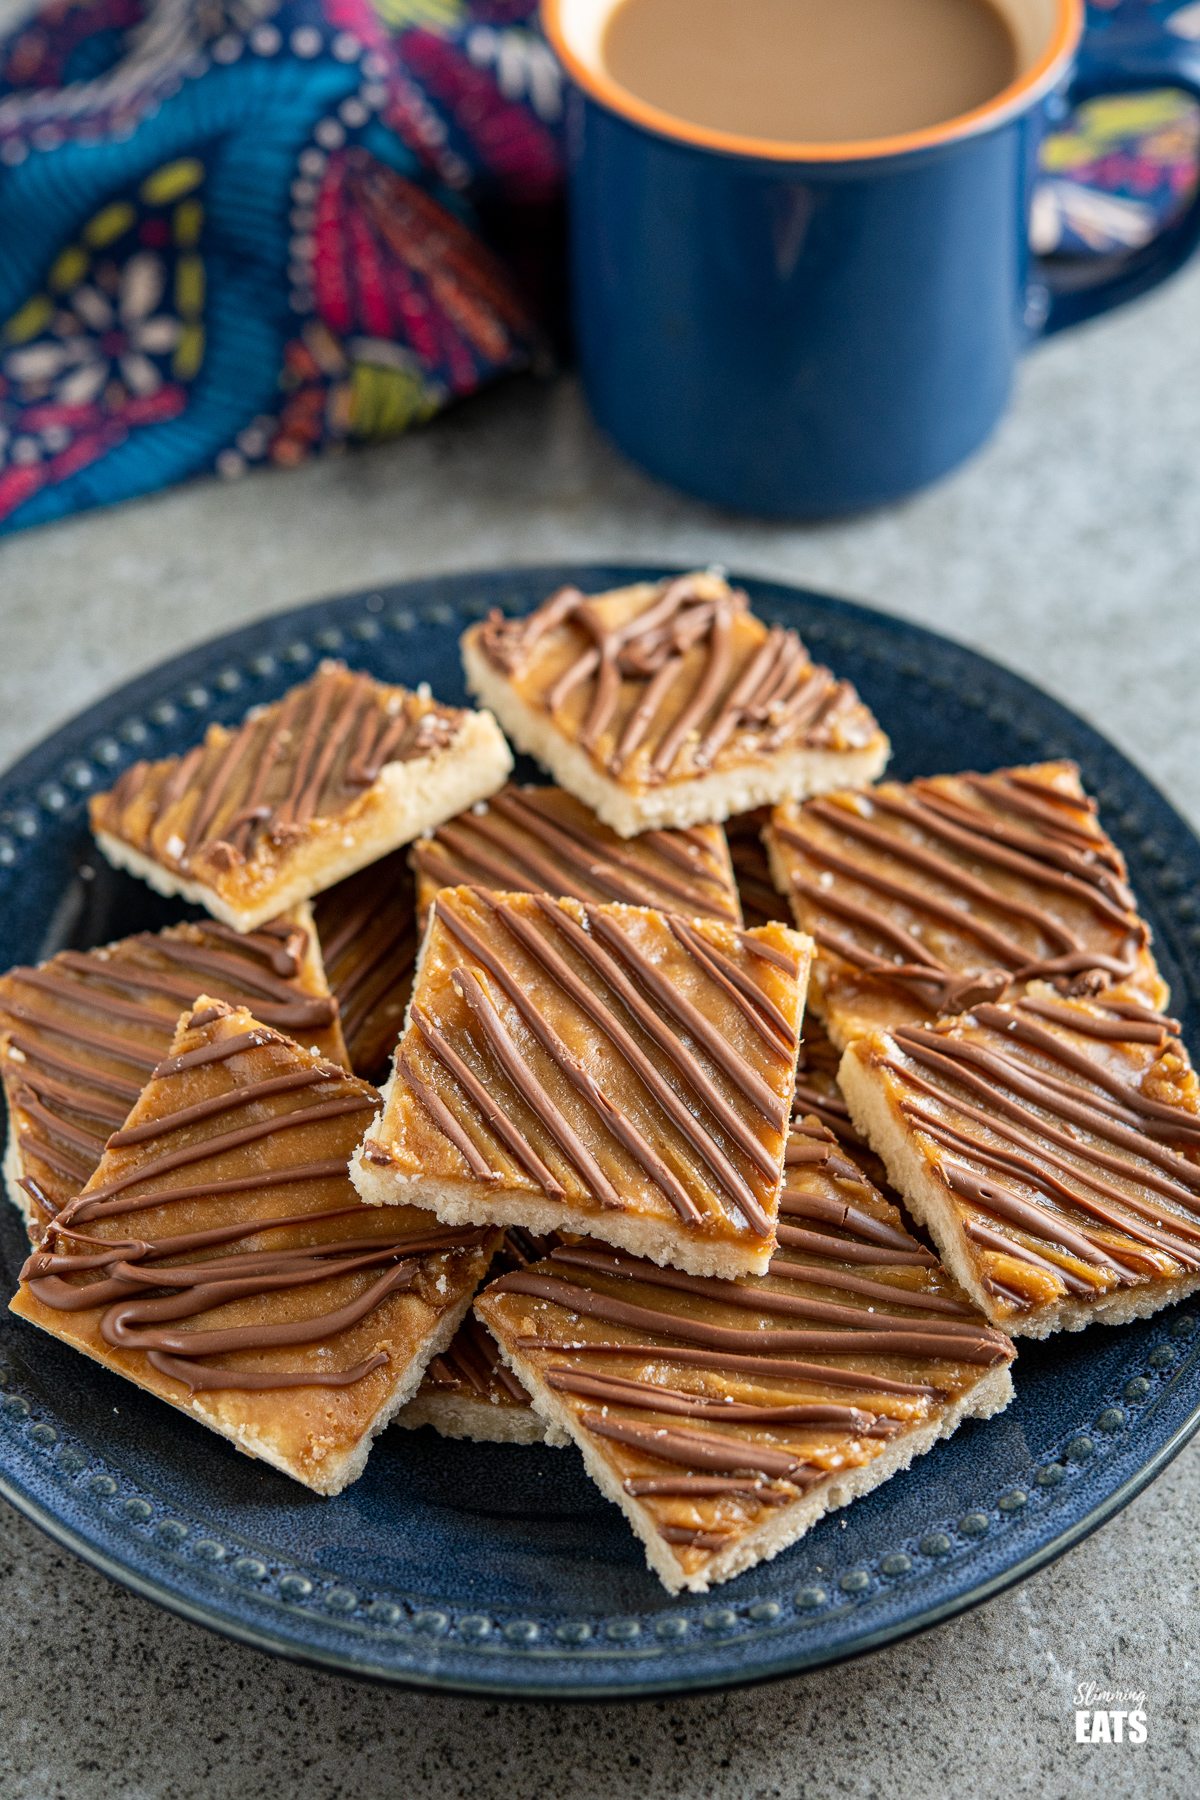 Millionaires Shortbread Squares on a dark blue navy plate with a blue mug of coffee